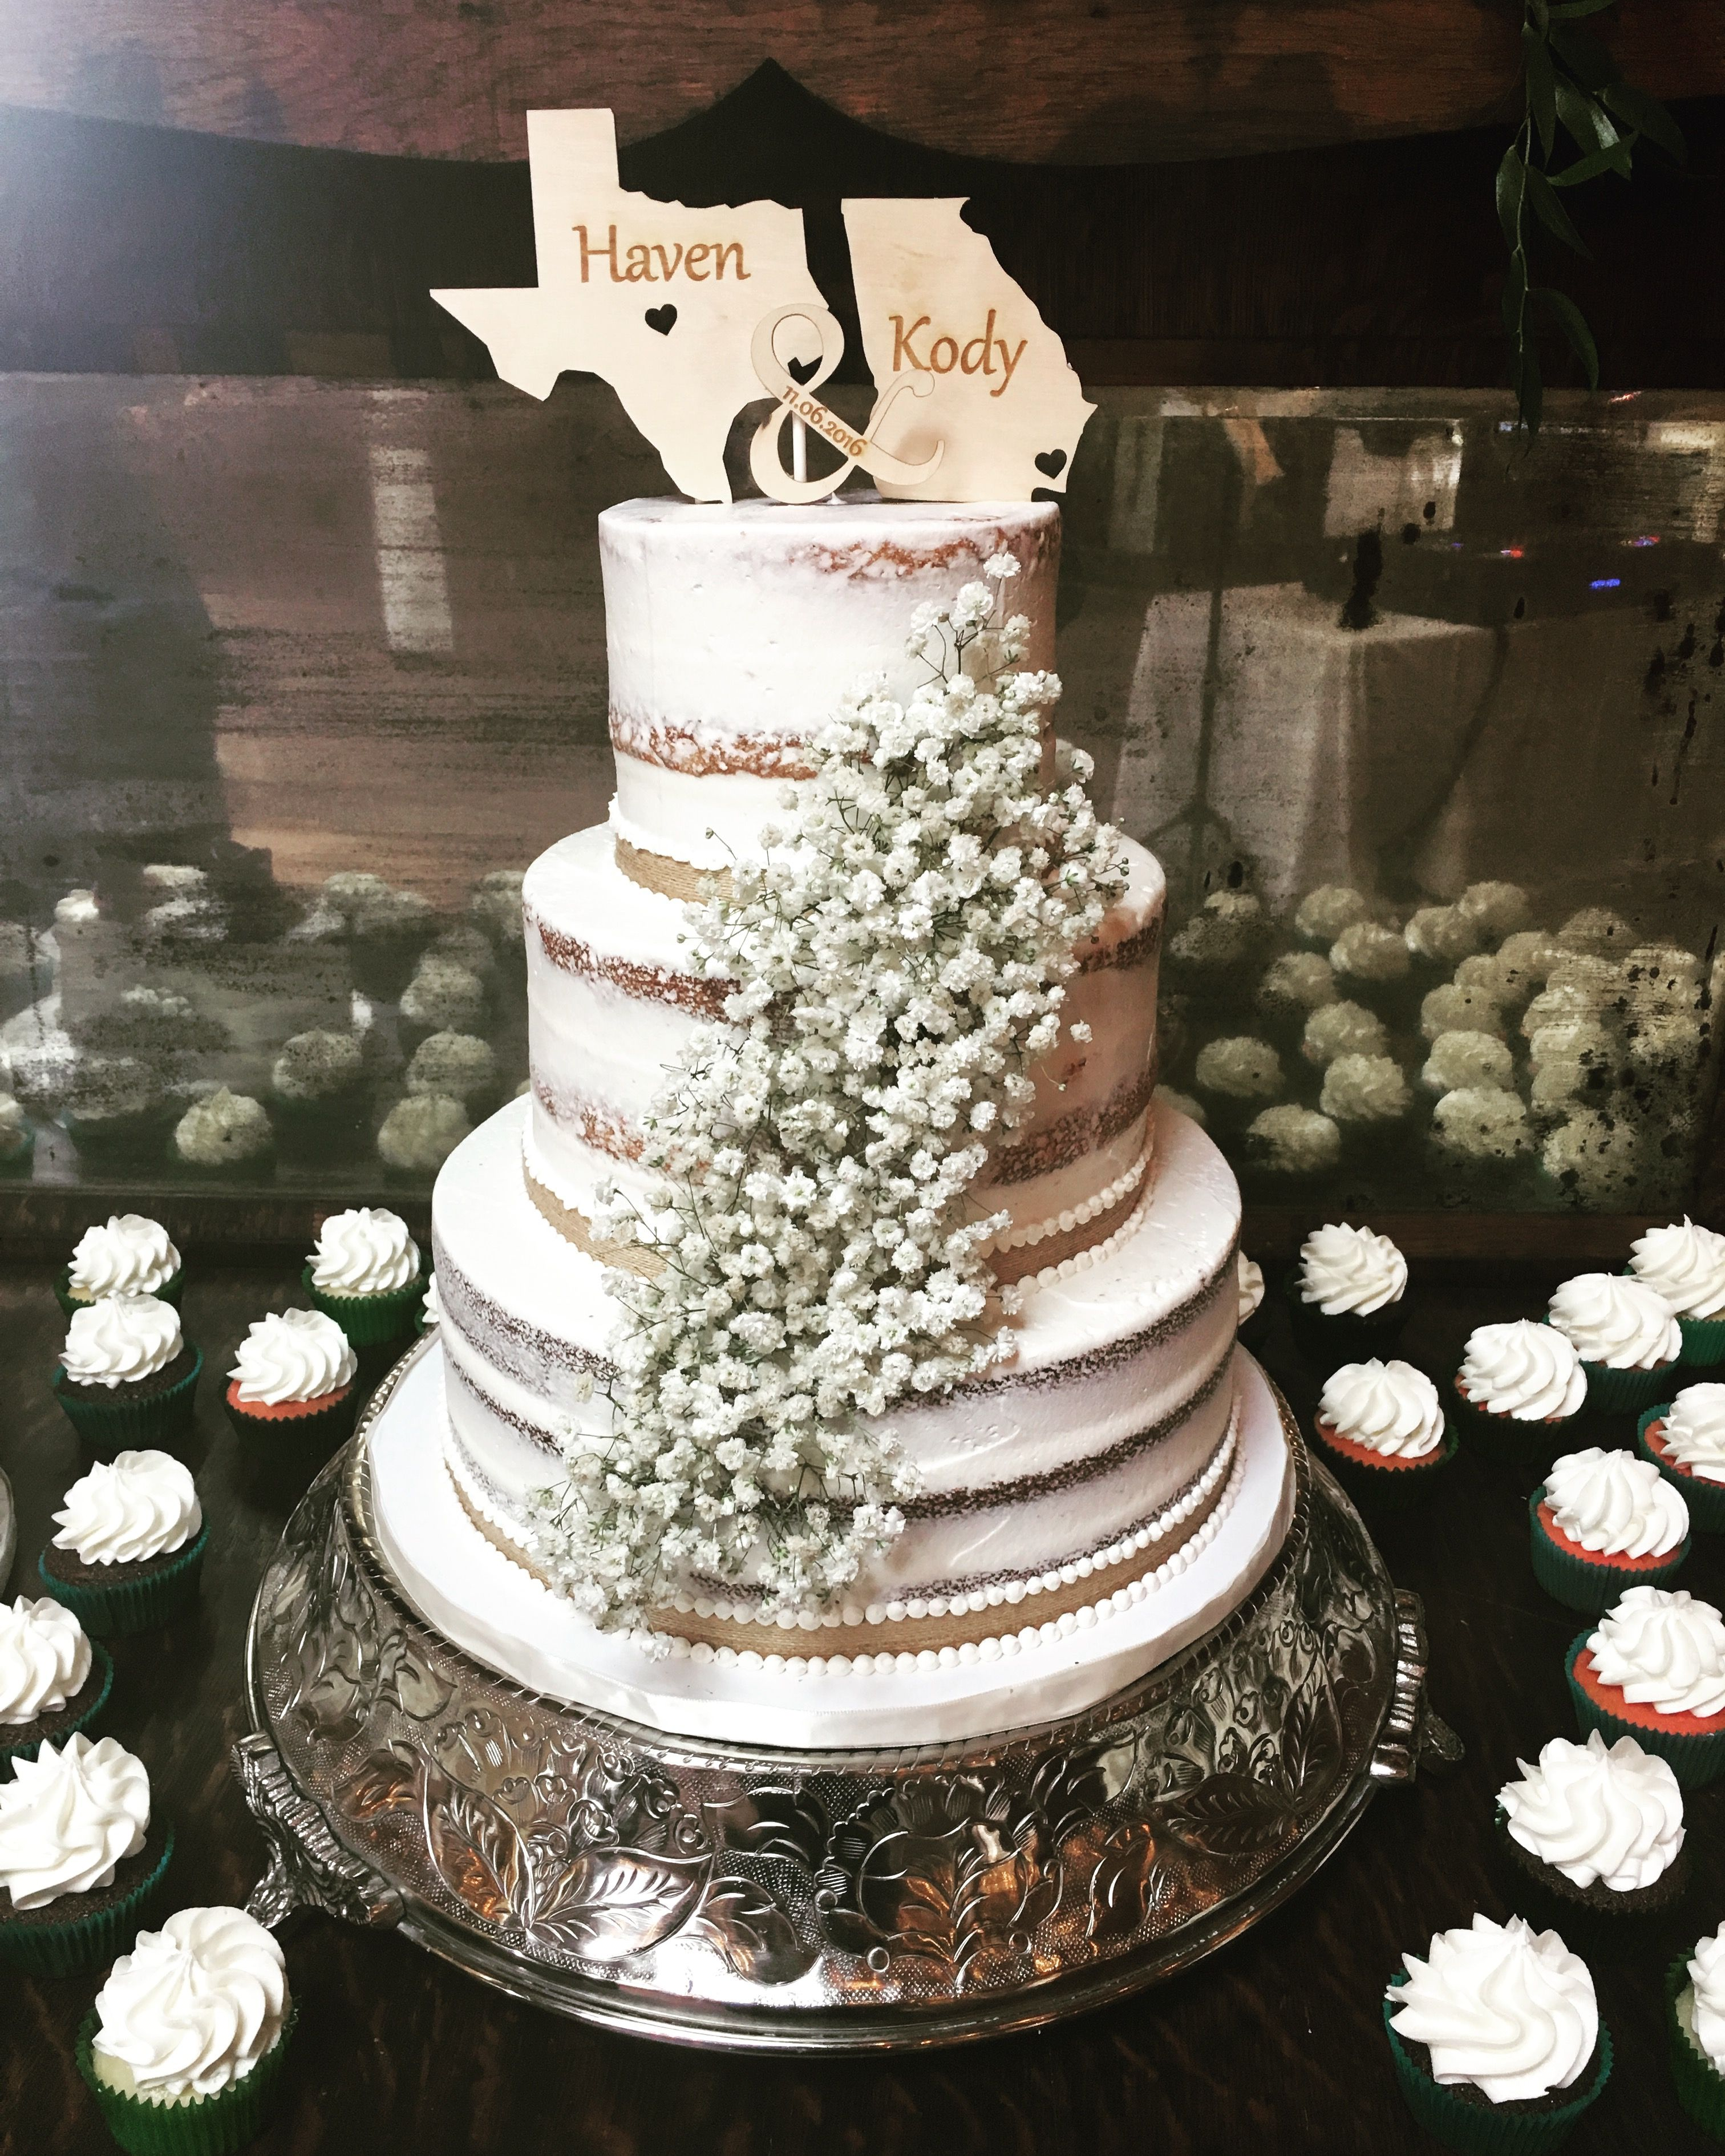 Rustic Wedding Cakes: Rustic Wedding. Naked Cake With Baby's Breath. Cupcake